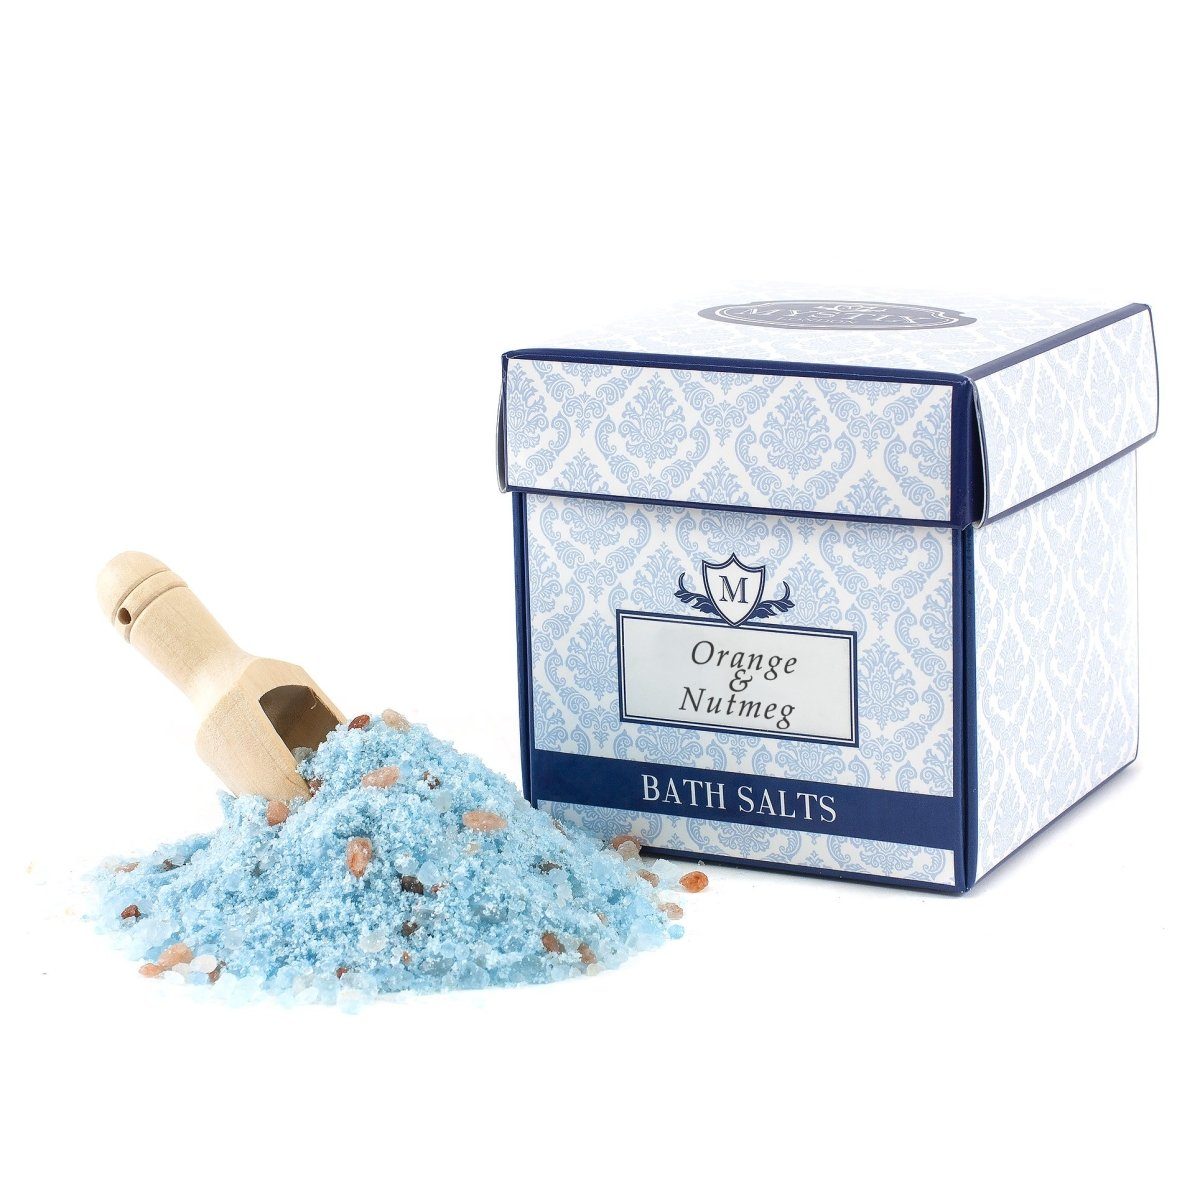 Orange & Nutmeg Essential Oil Bath Salt 350g - Mystic Moments UK